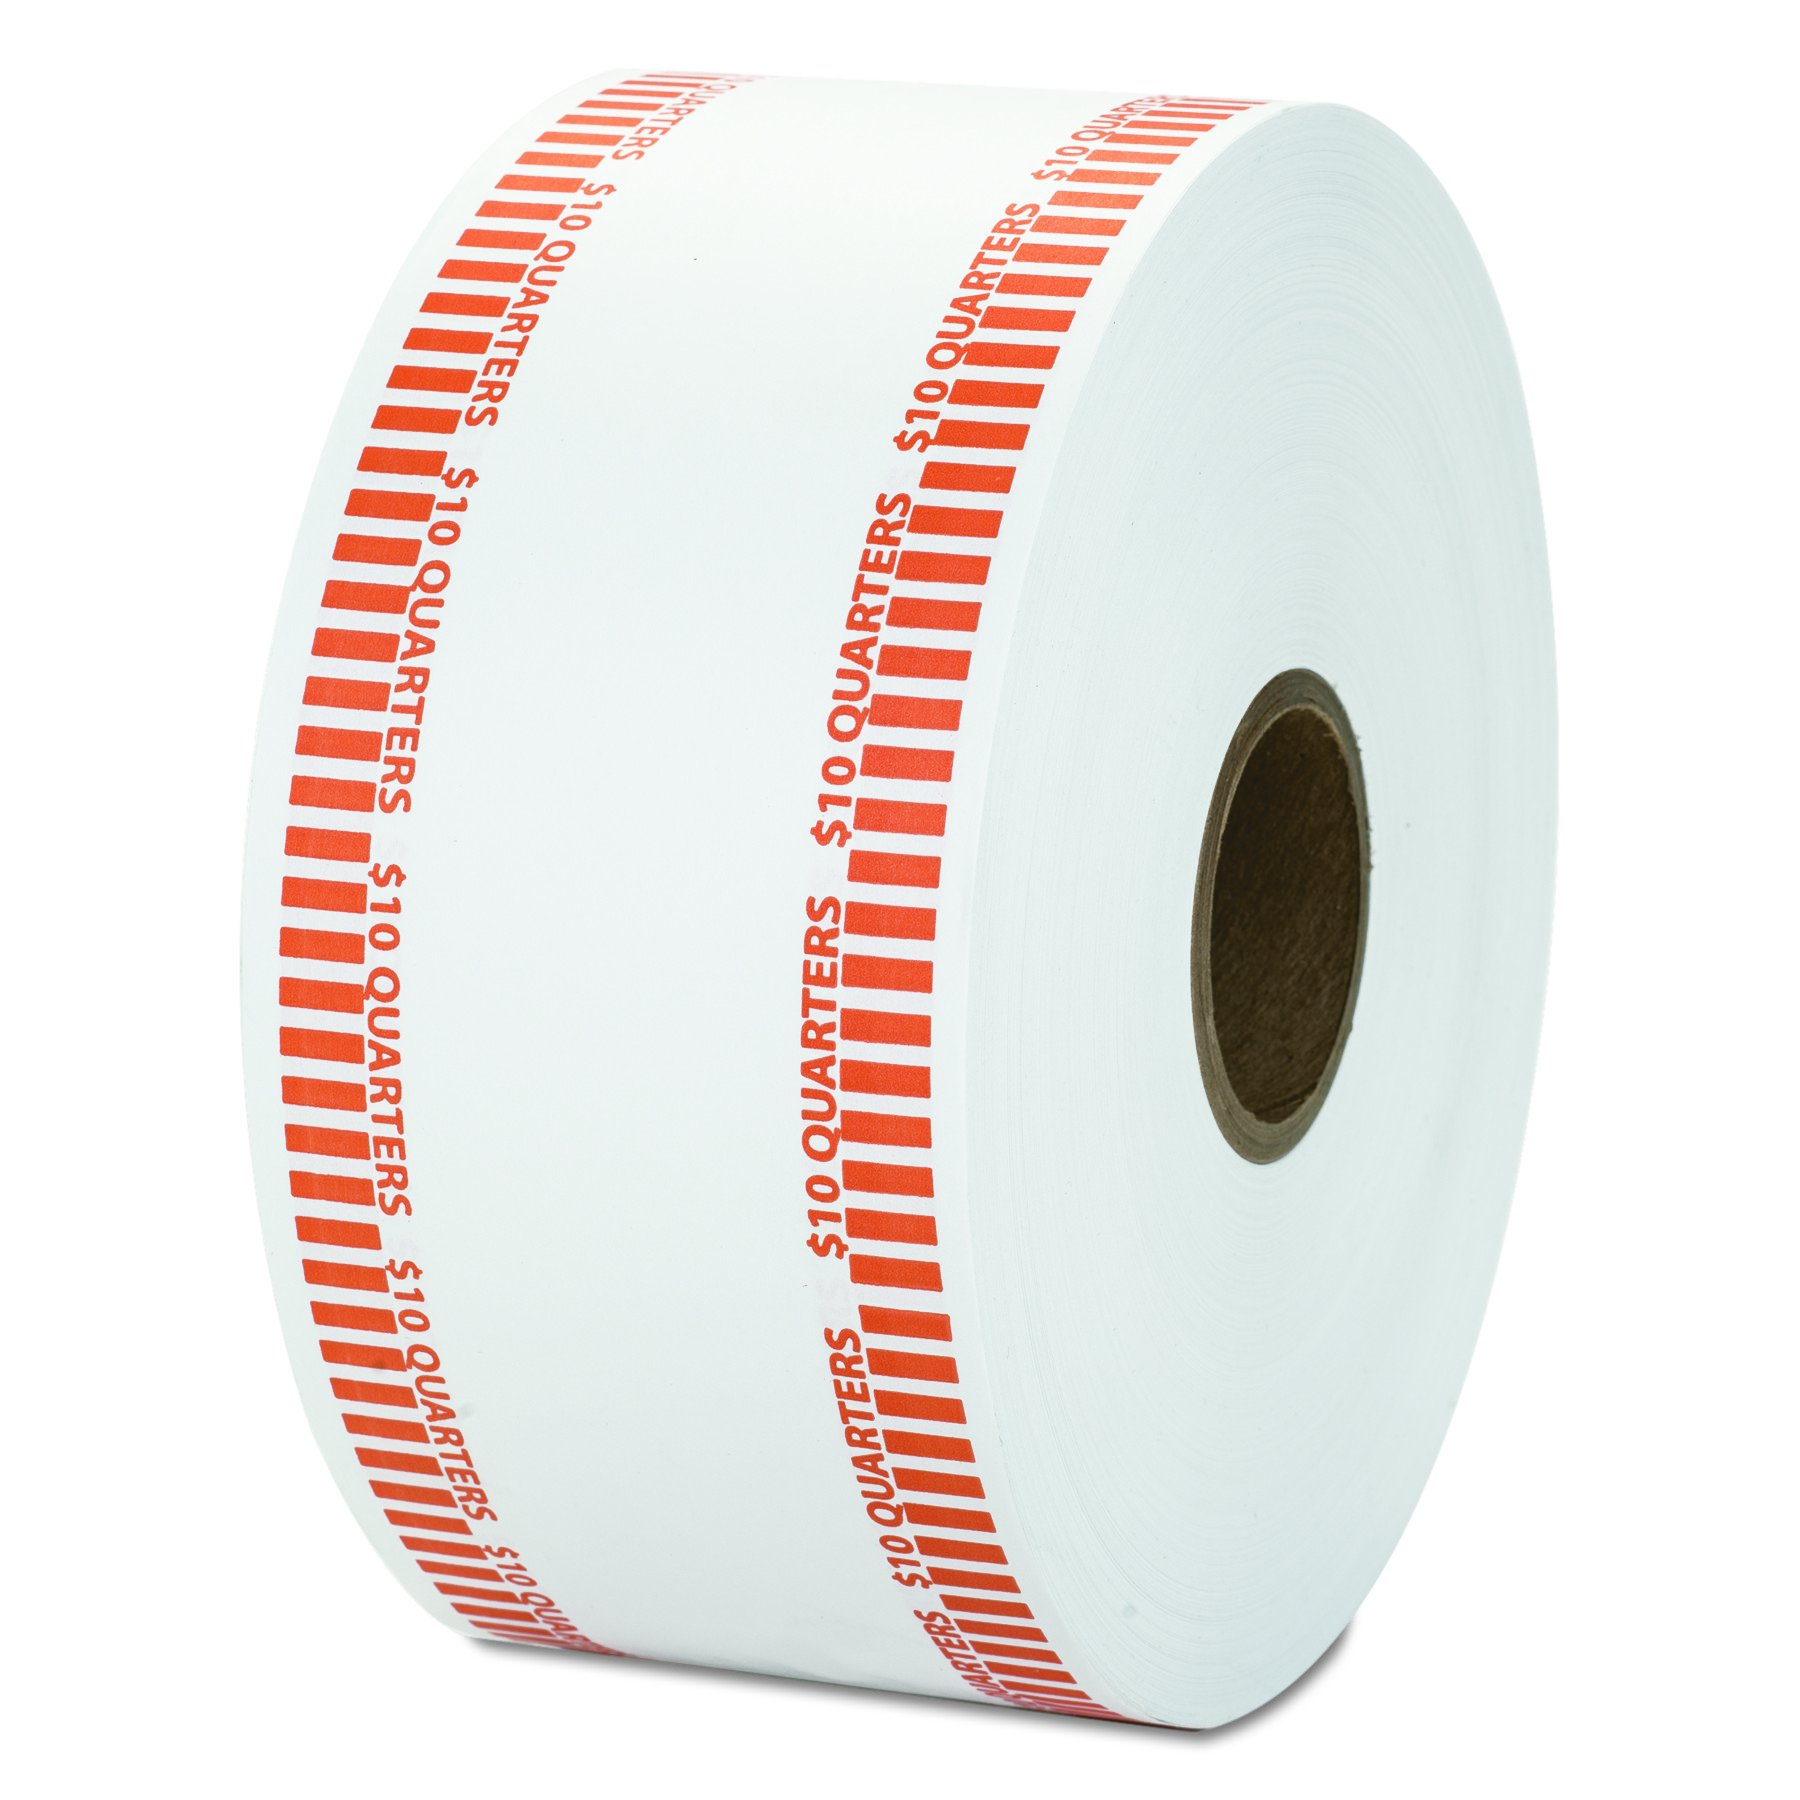 Coin-Tainer 50025 Automatic Coin Rolls, Quarters, $10, 1900 Wrappers per Roll by MMF Industries (Image #3)